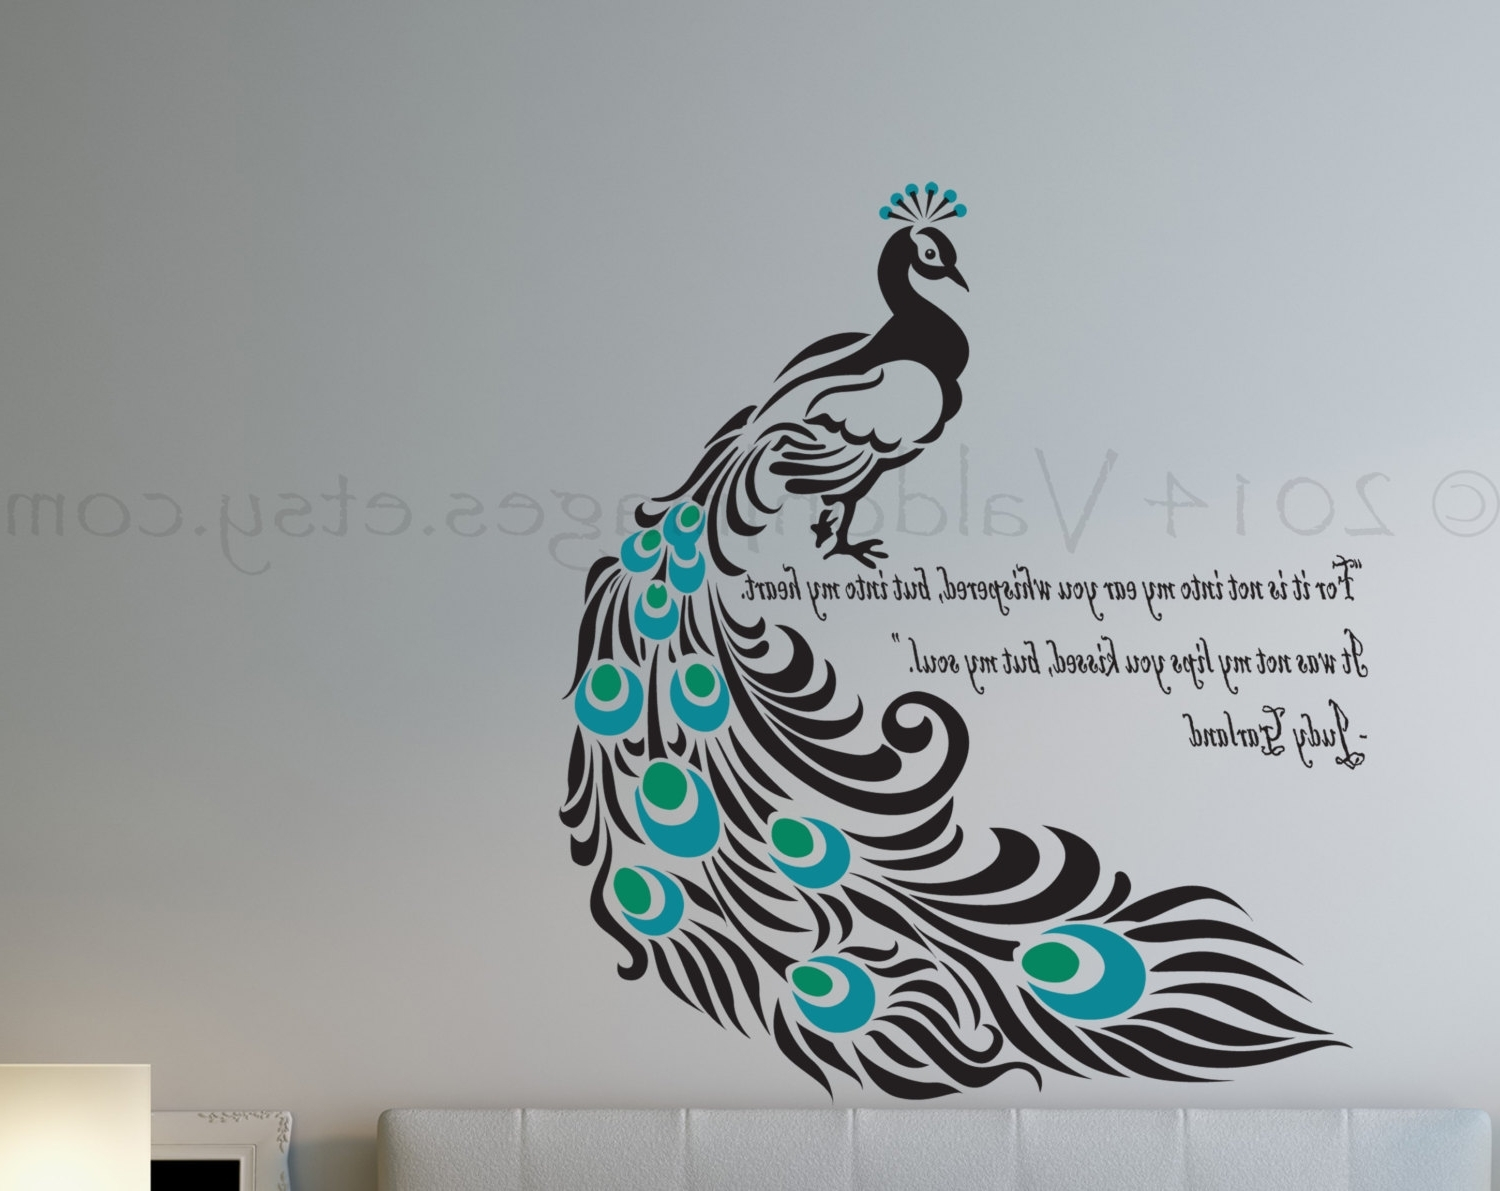 Peacock Wall Decal Epic Peacock Wall Art – Wall Decoration Ideas Throughout Famous Peacock Wall Art (View 9 of 15)